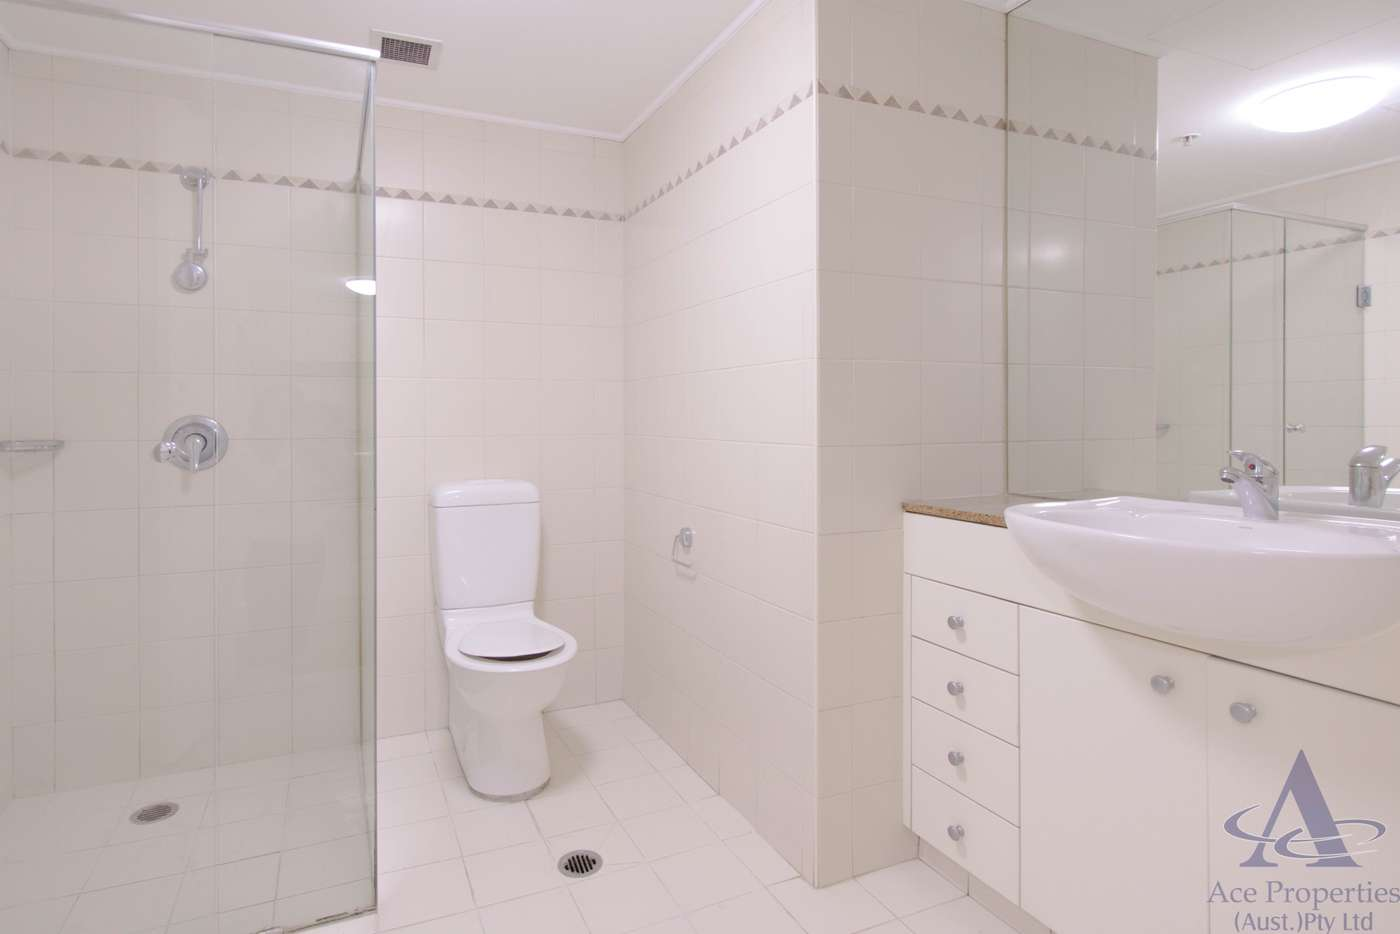 Seventh view of Homely apartment listing, 393 Pitt Street, Sydney NSW 2000